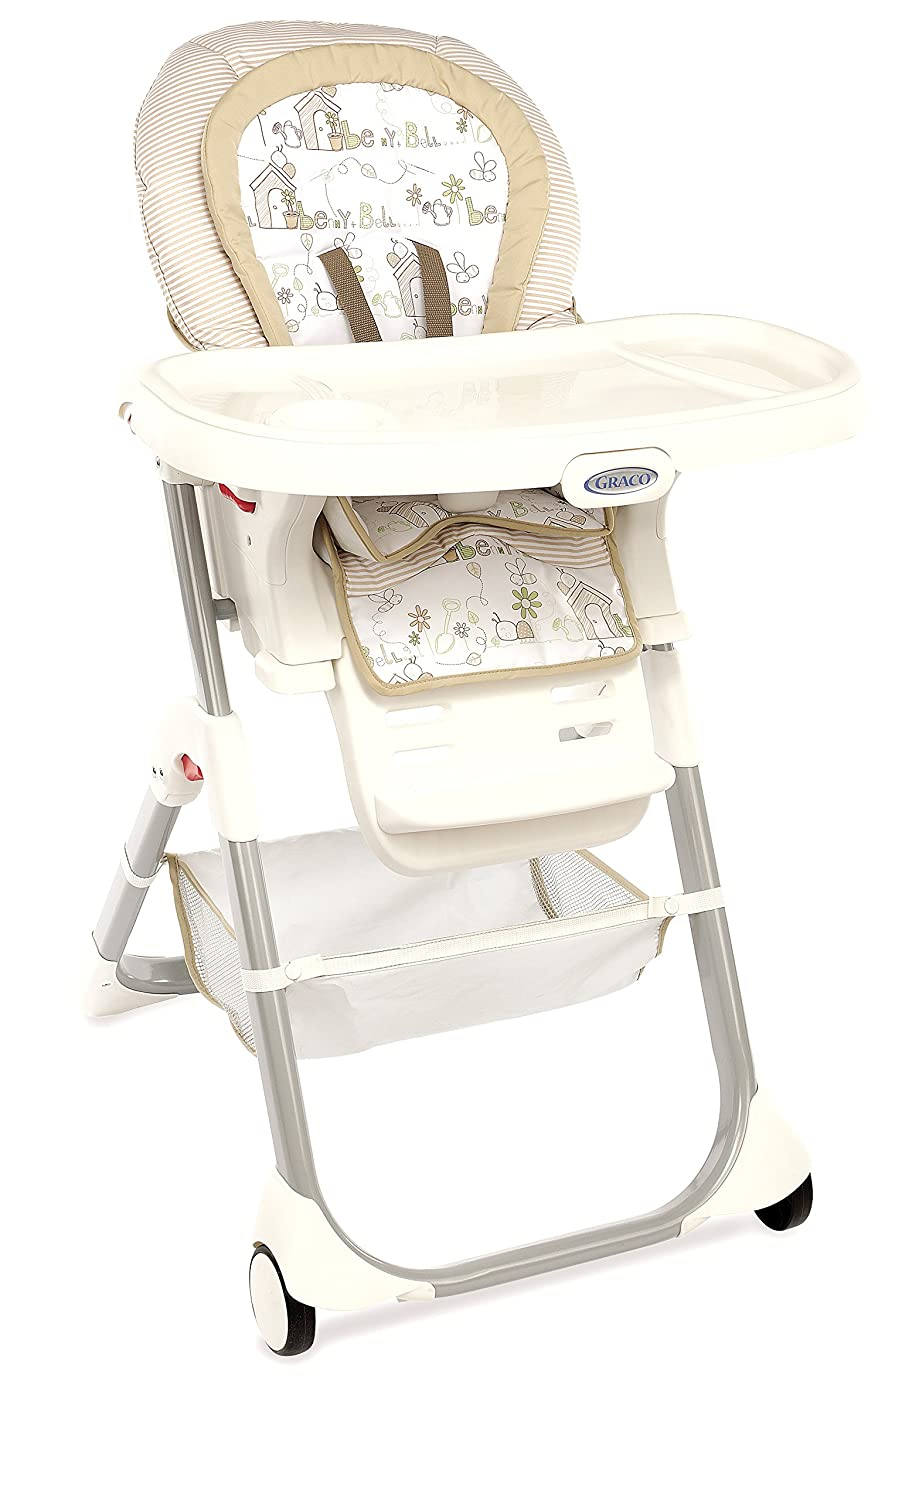 74817da99b137 Graco are another one of the more trusted baby product brands. The benefit  of choosing a well-known high chair brand is that you can have confidence  that ...